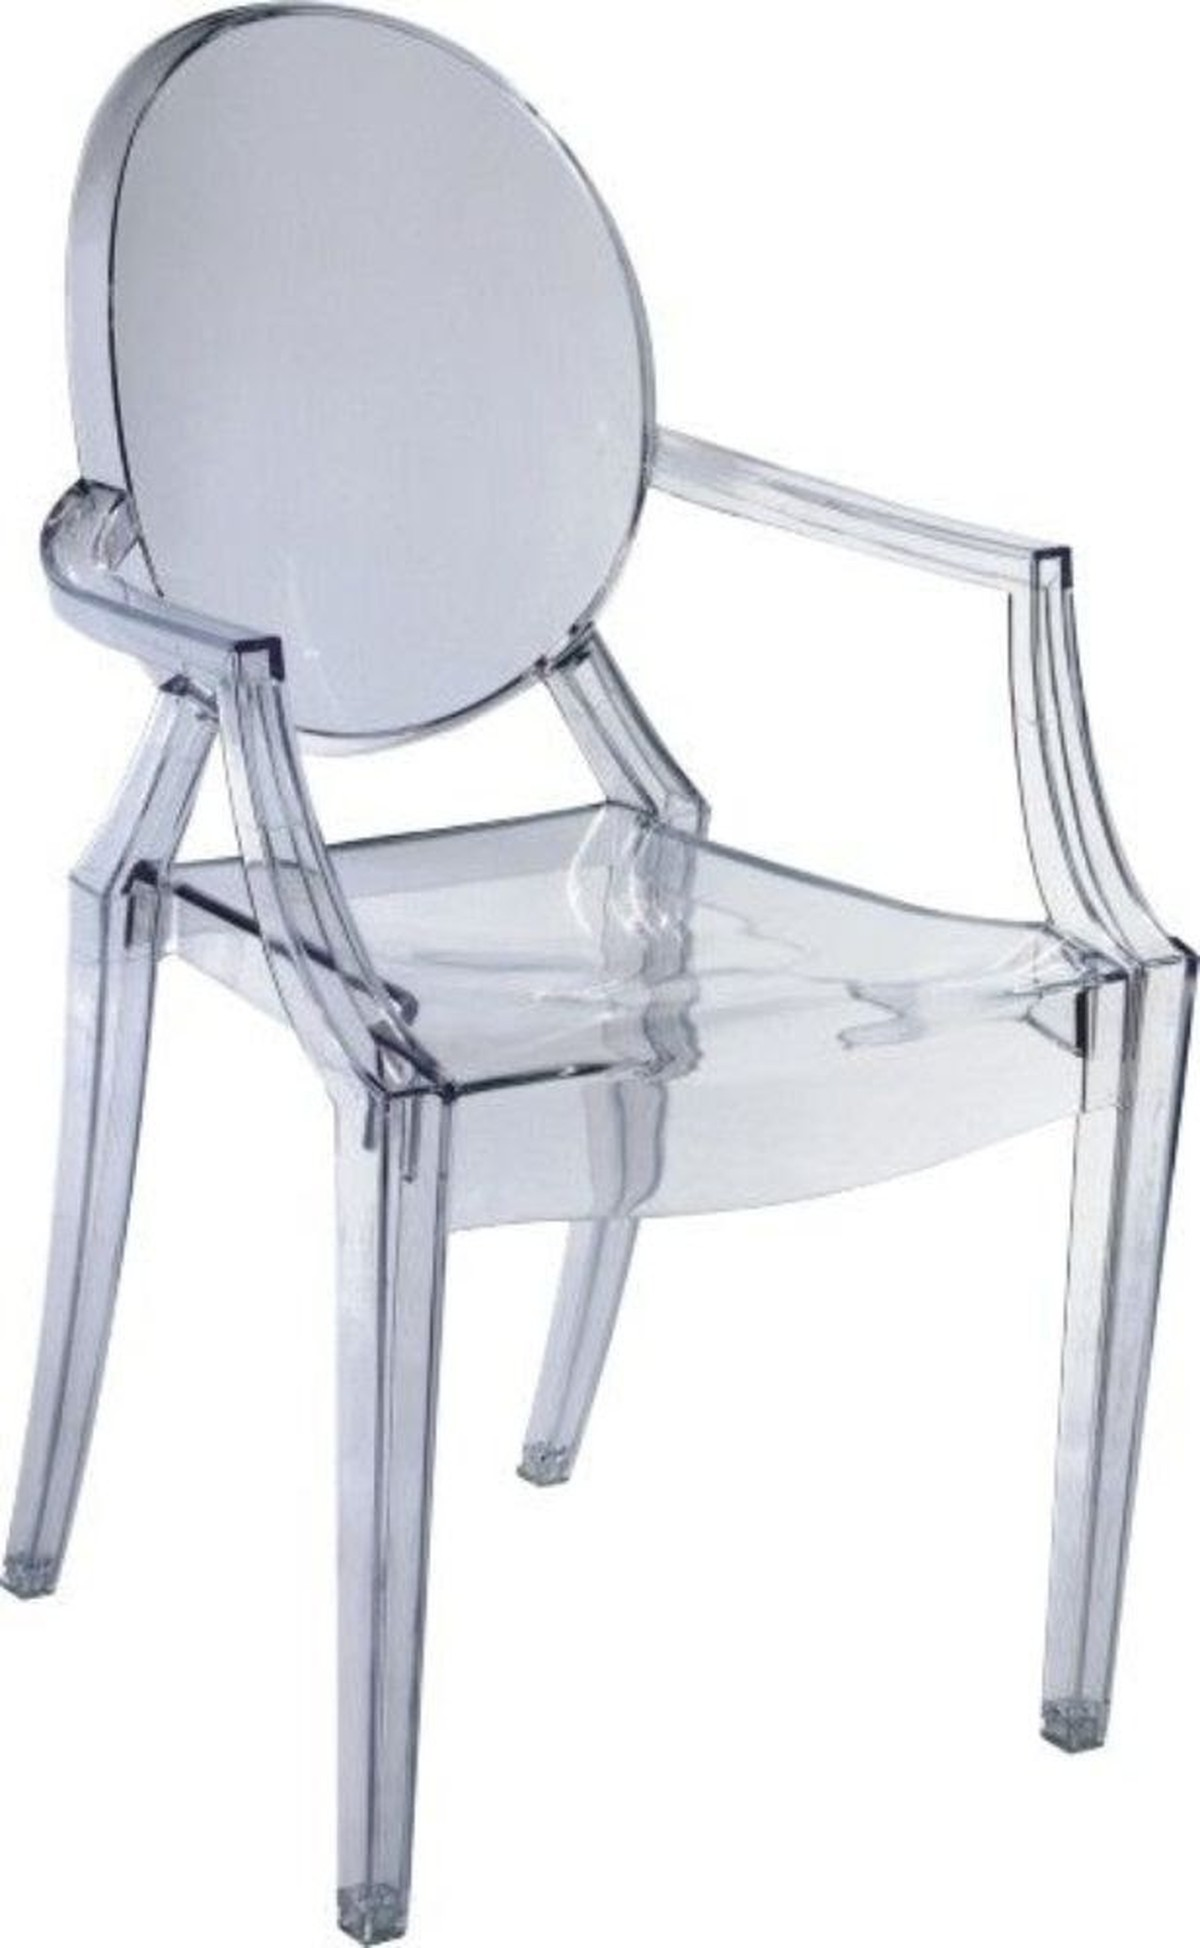 Ghost Chair Replica Secondhand Vintage And Reclaimed Designer Furniture